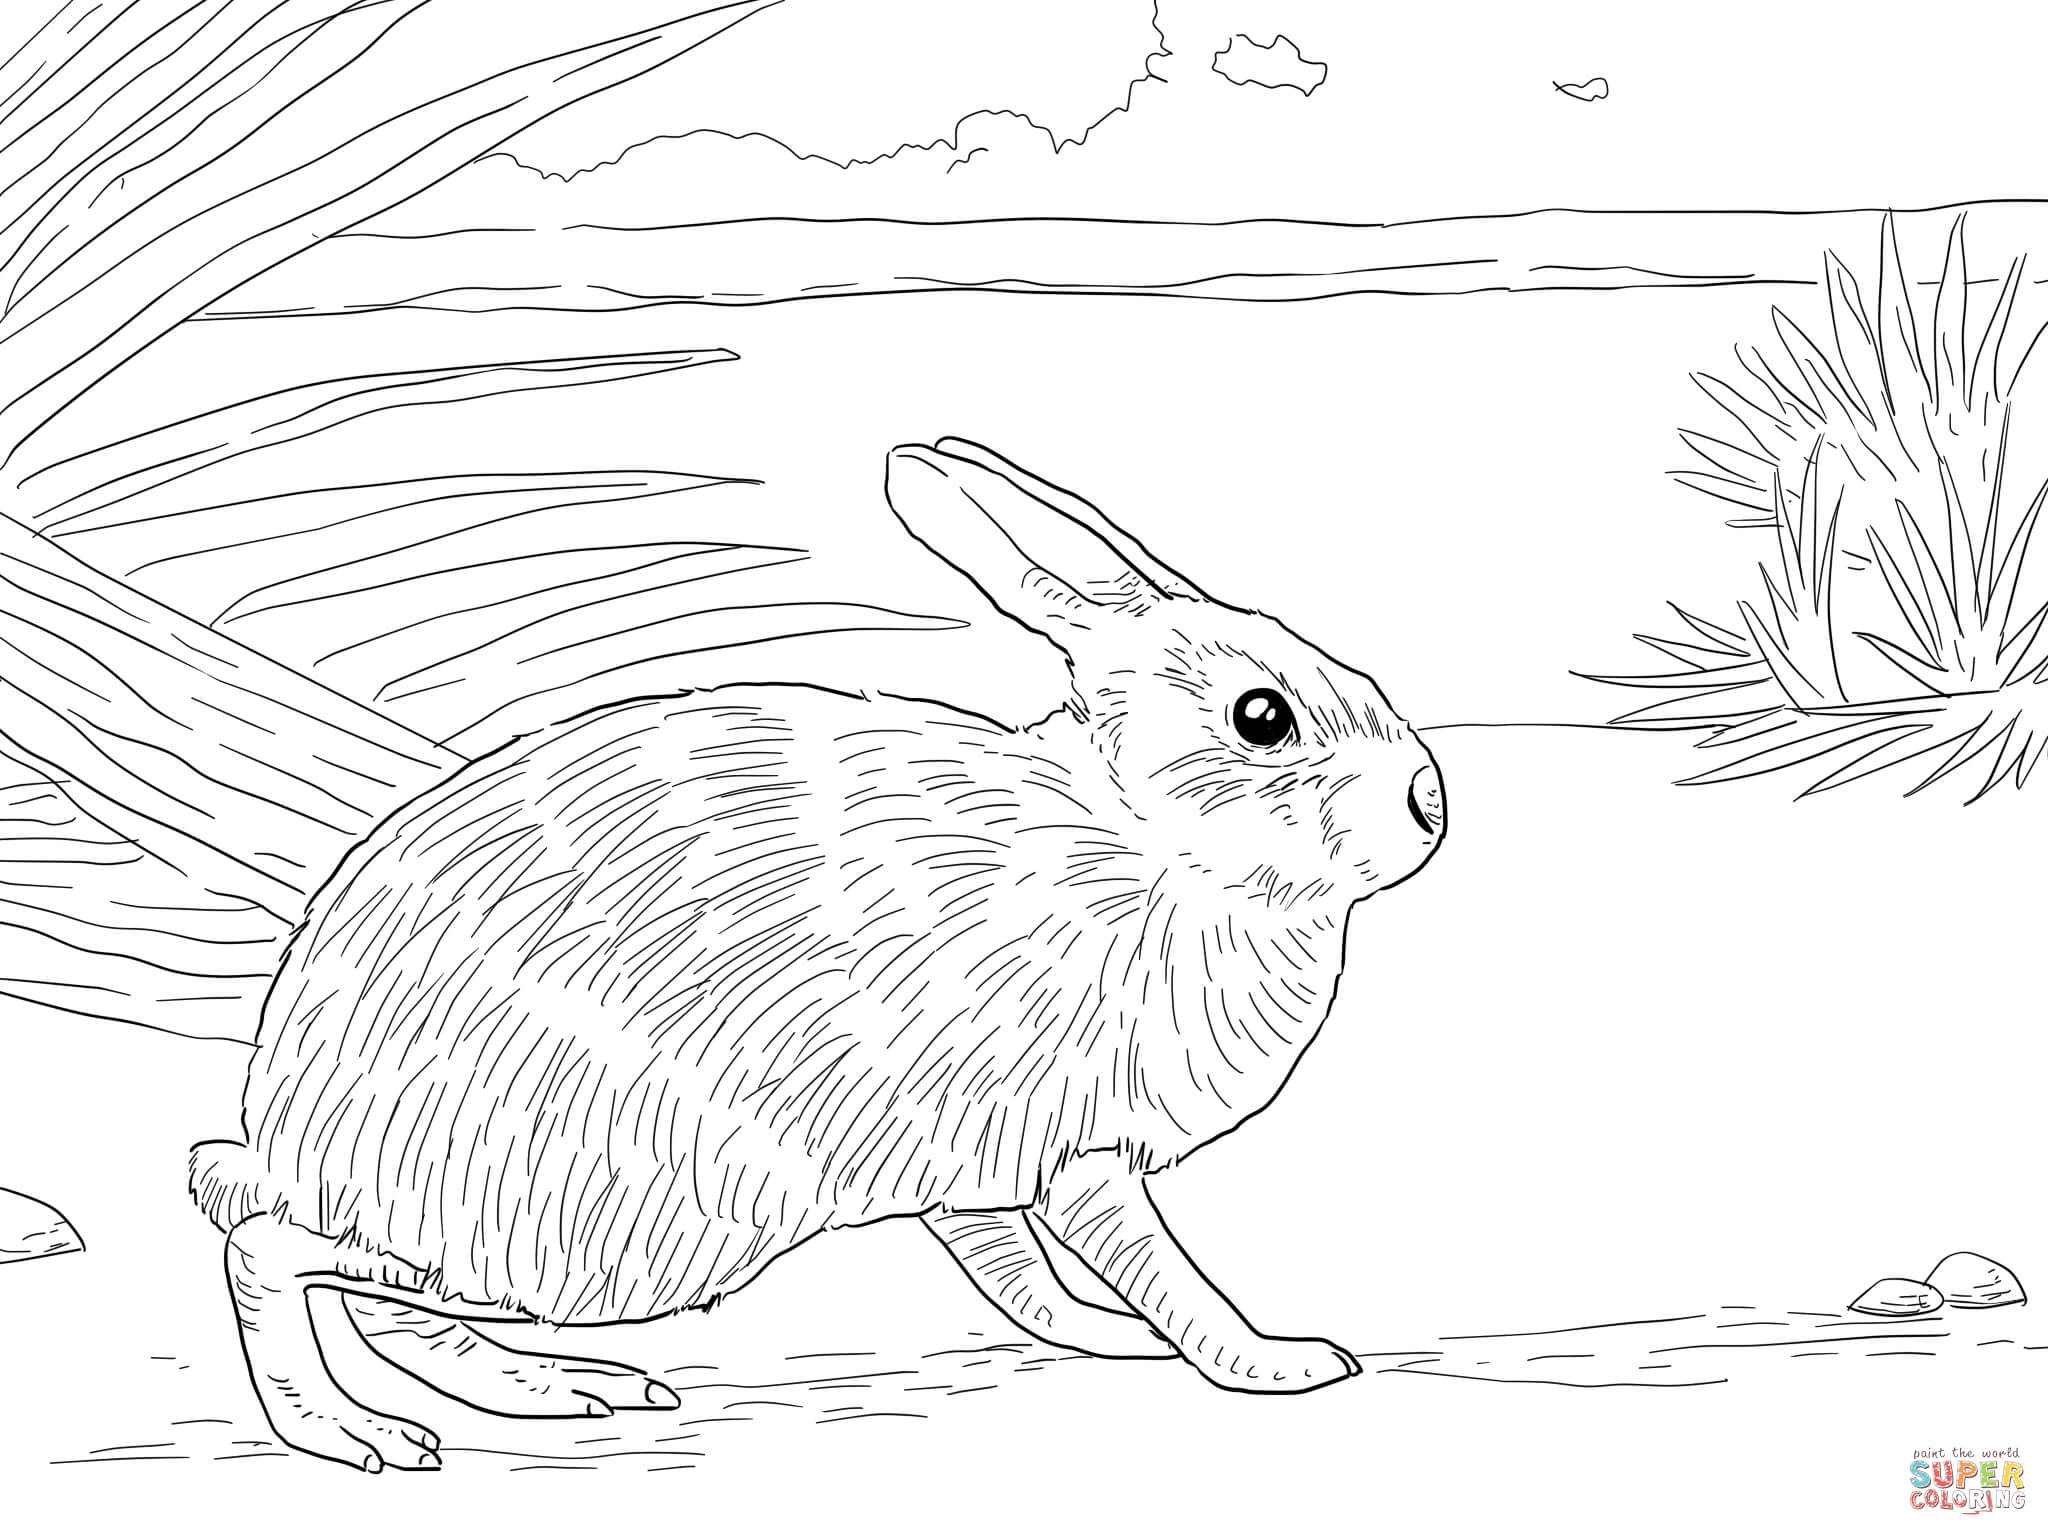 Velveteen Rabbit Coloring Pages At Getcolorings